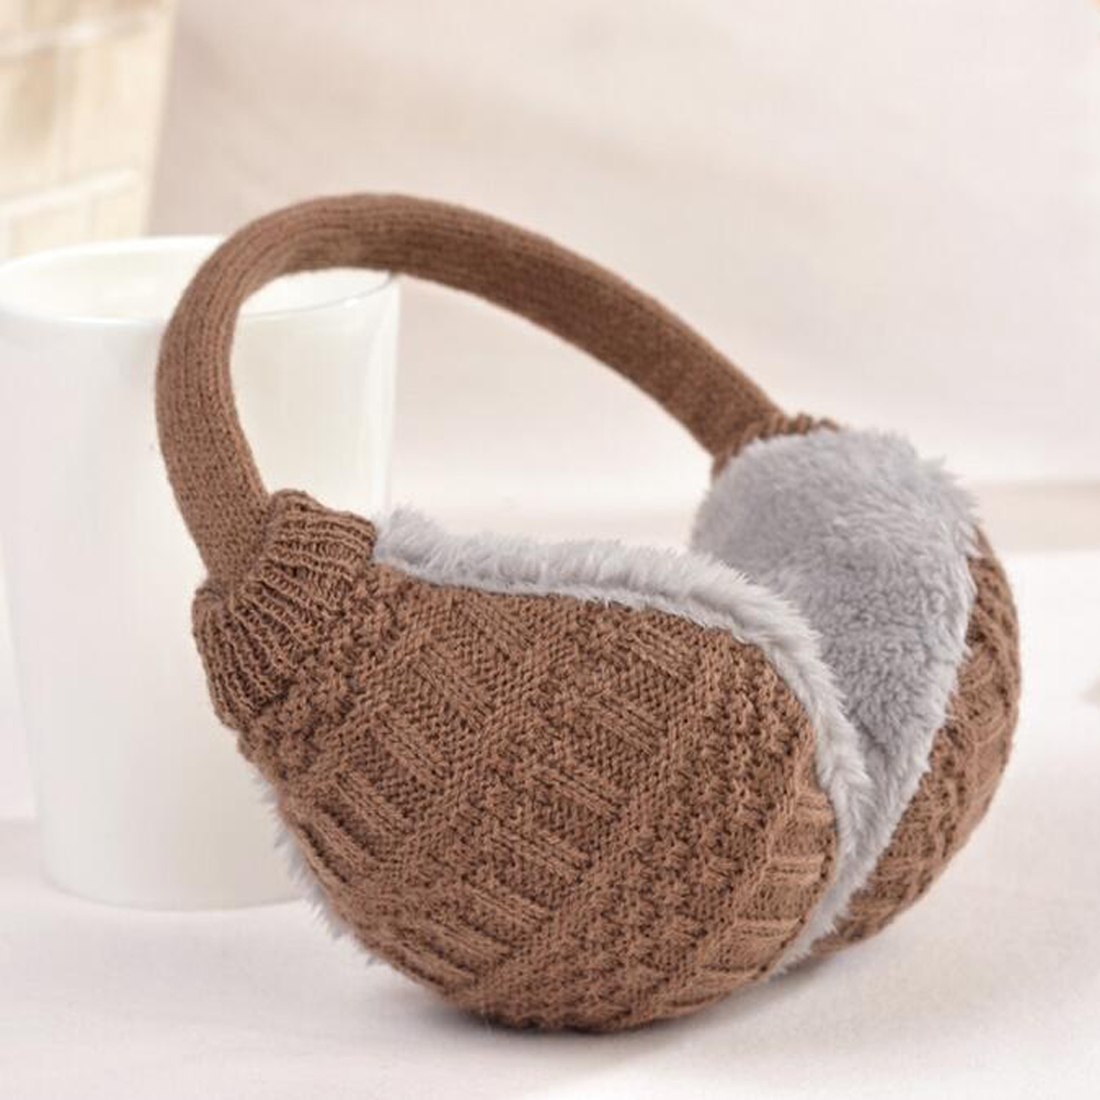 Comfortable Winter Ear Cover Women Warm Knitted Earmuffs Ear Warmers Women Girls Plush Ear Muffs Earlap Warmer Headband